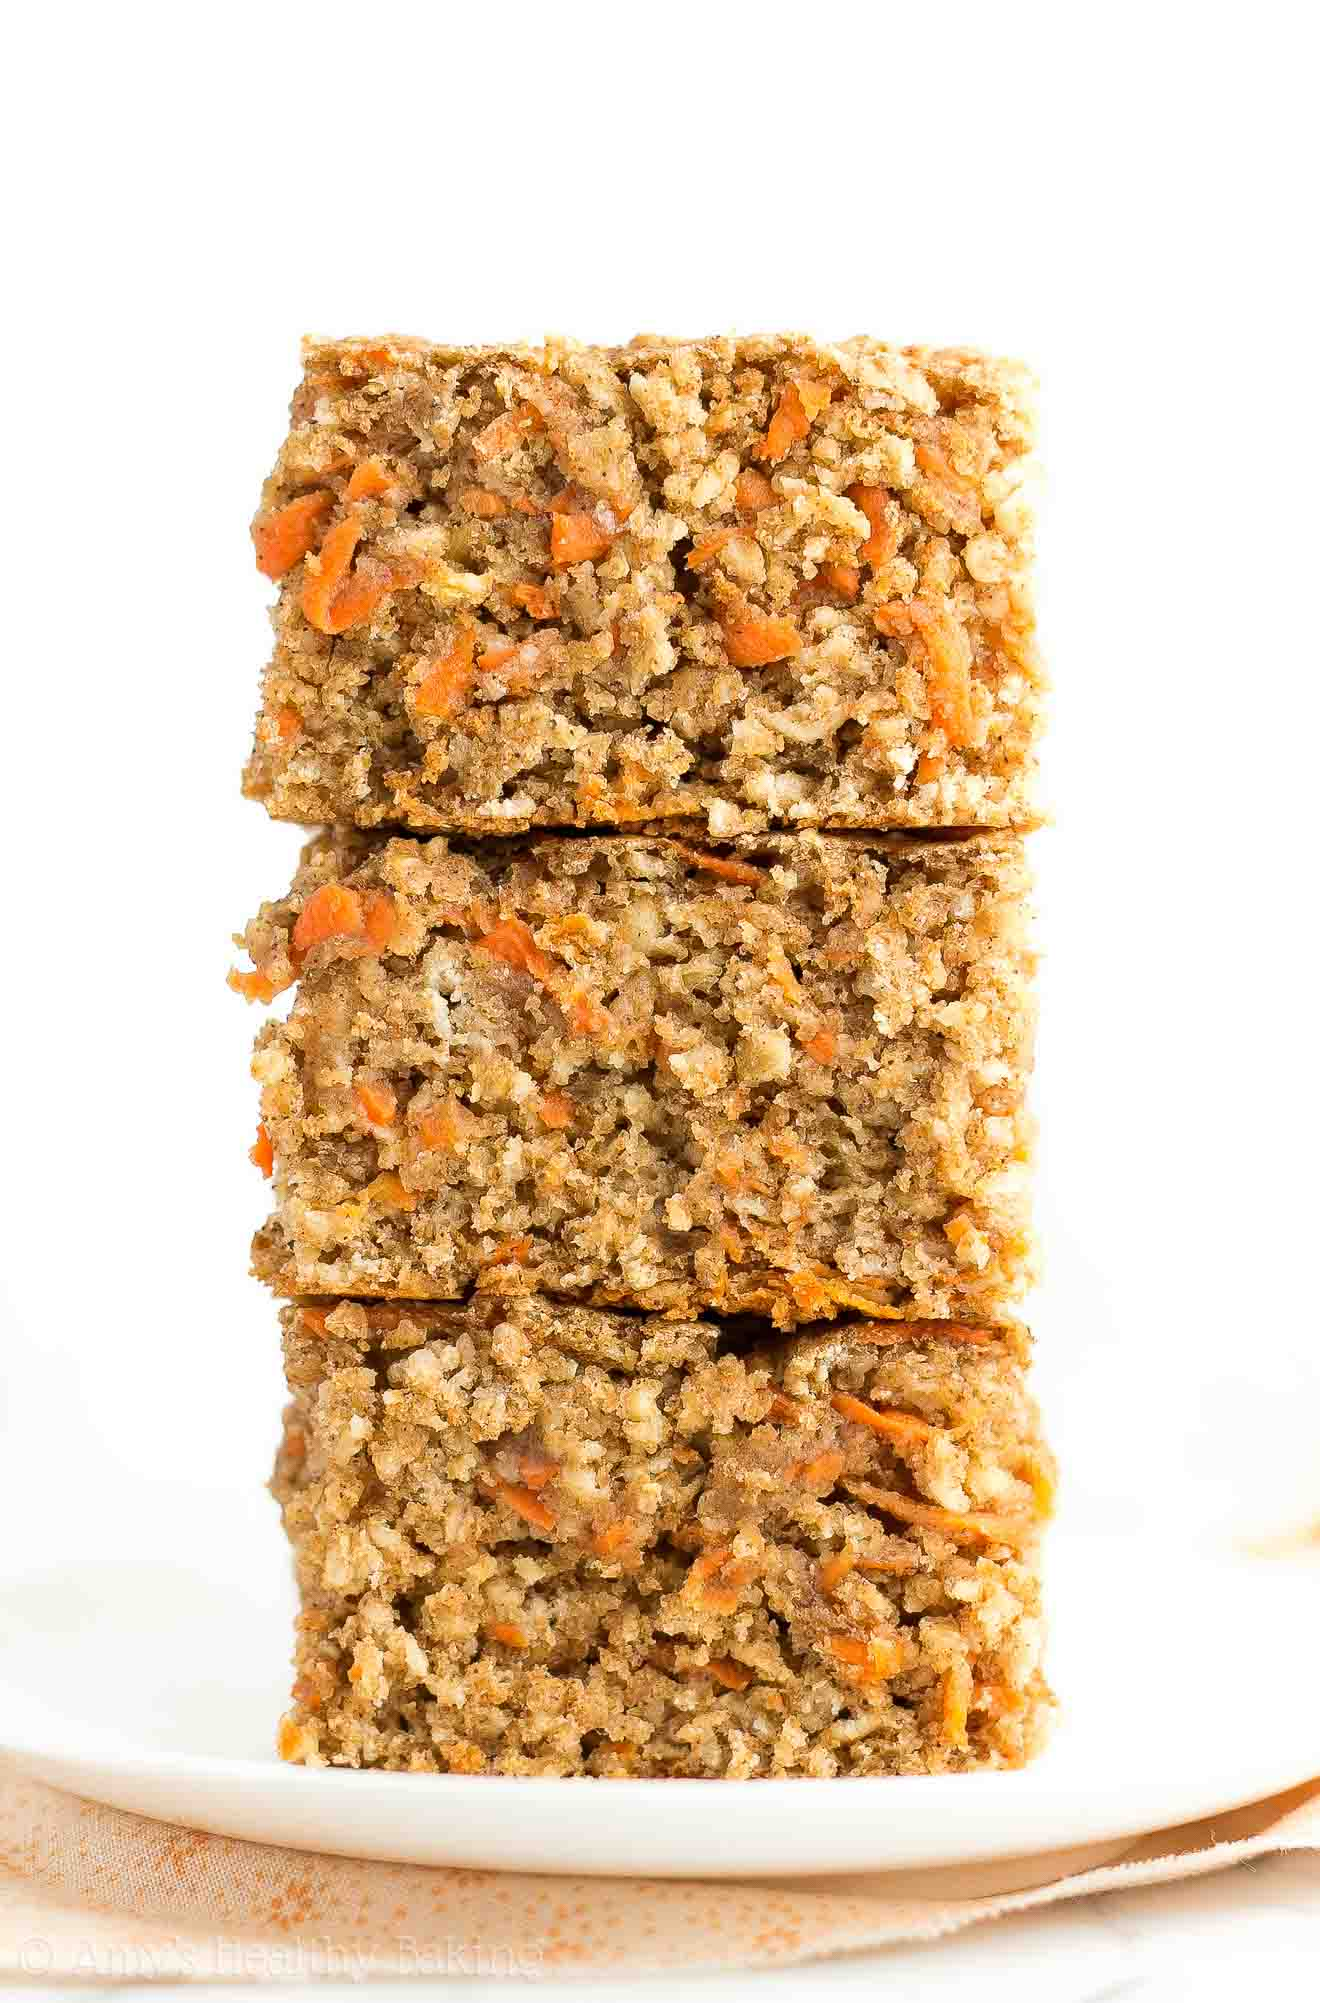 Stacked slices of Healthy Carrot Cake Oatmeal Snack Cake